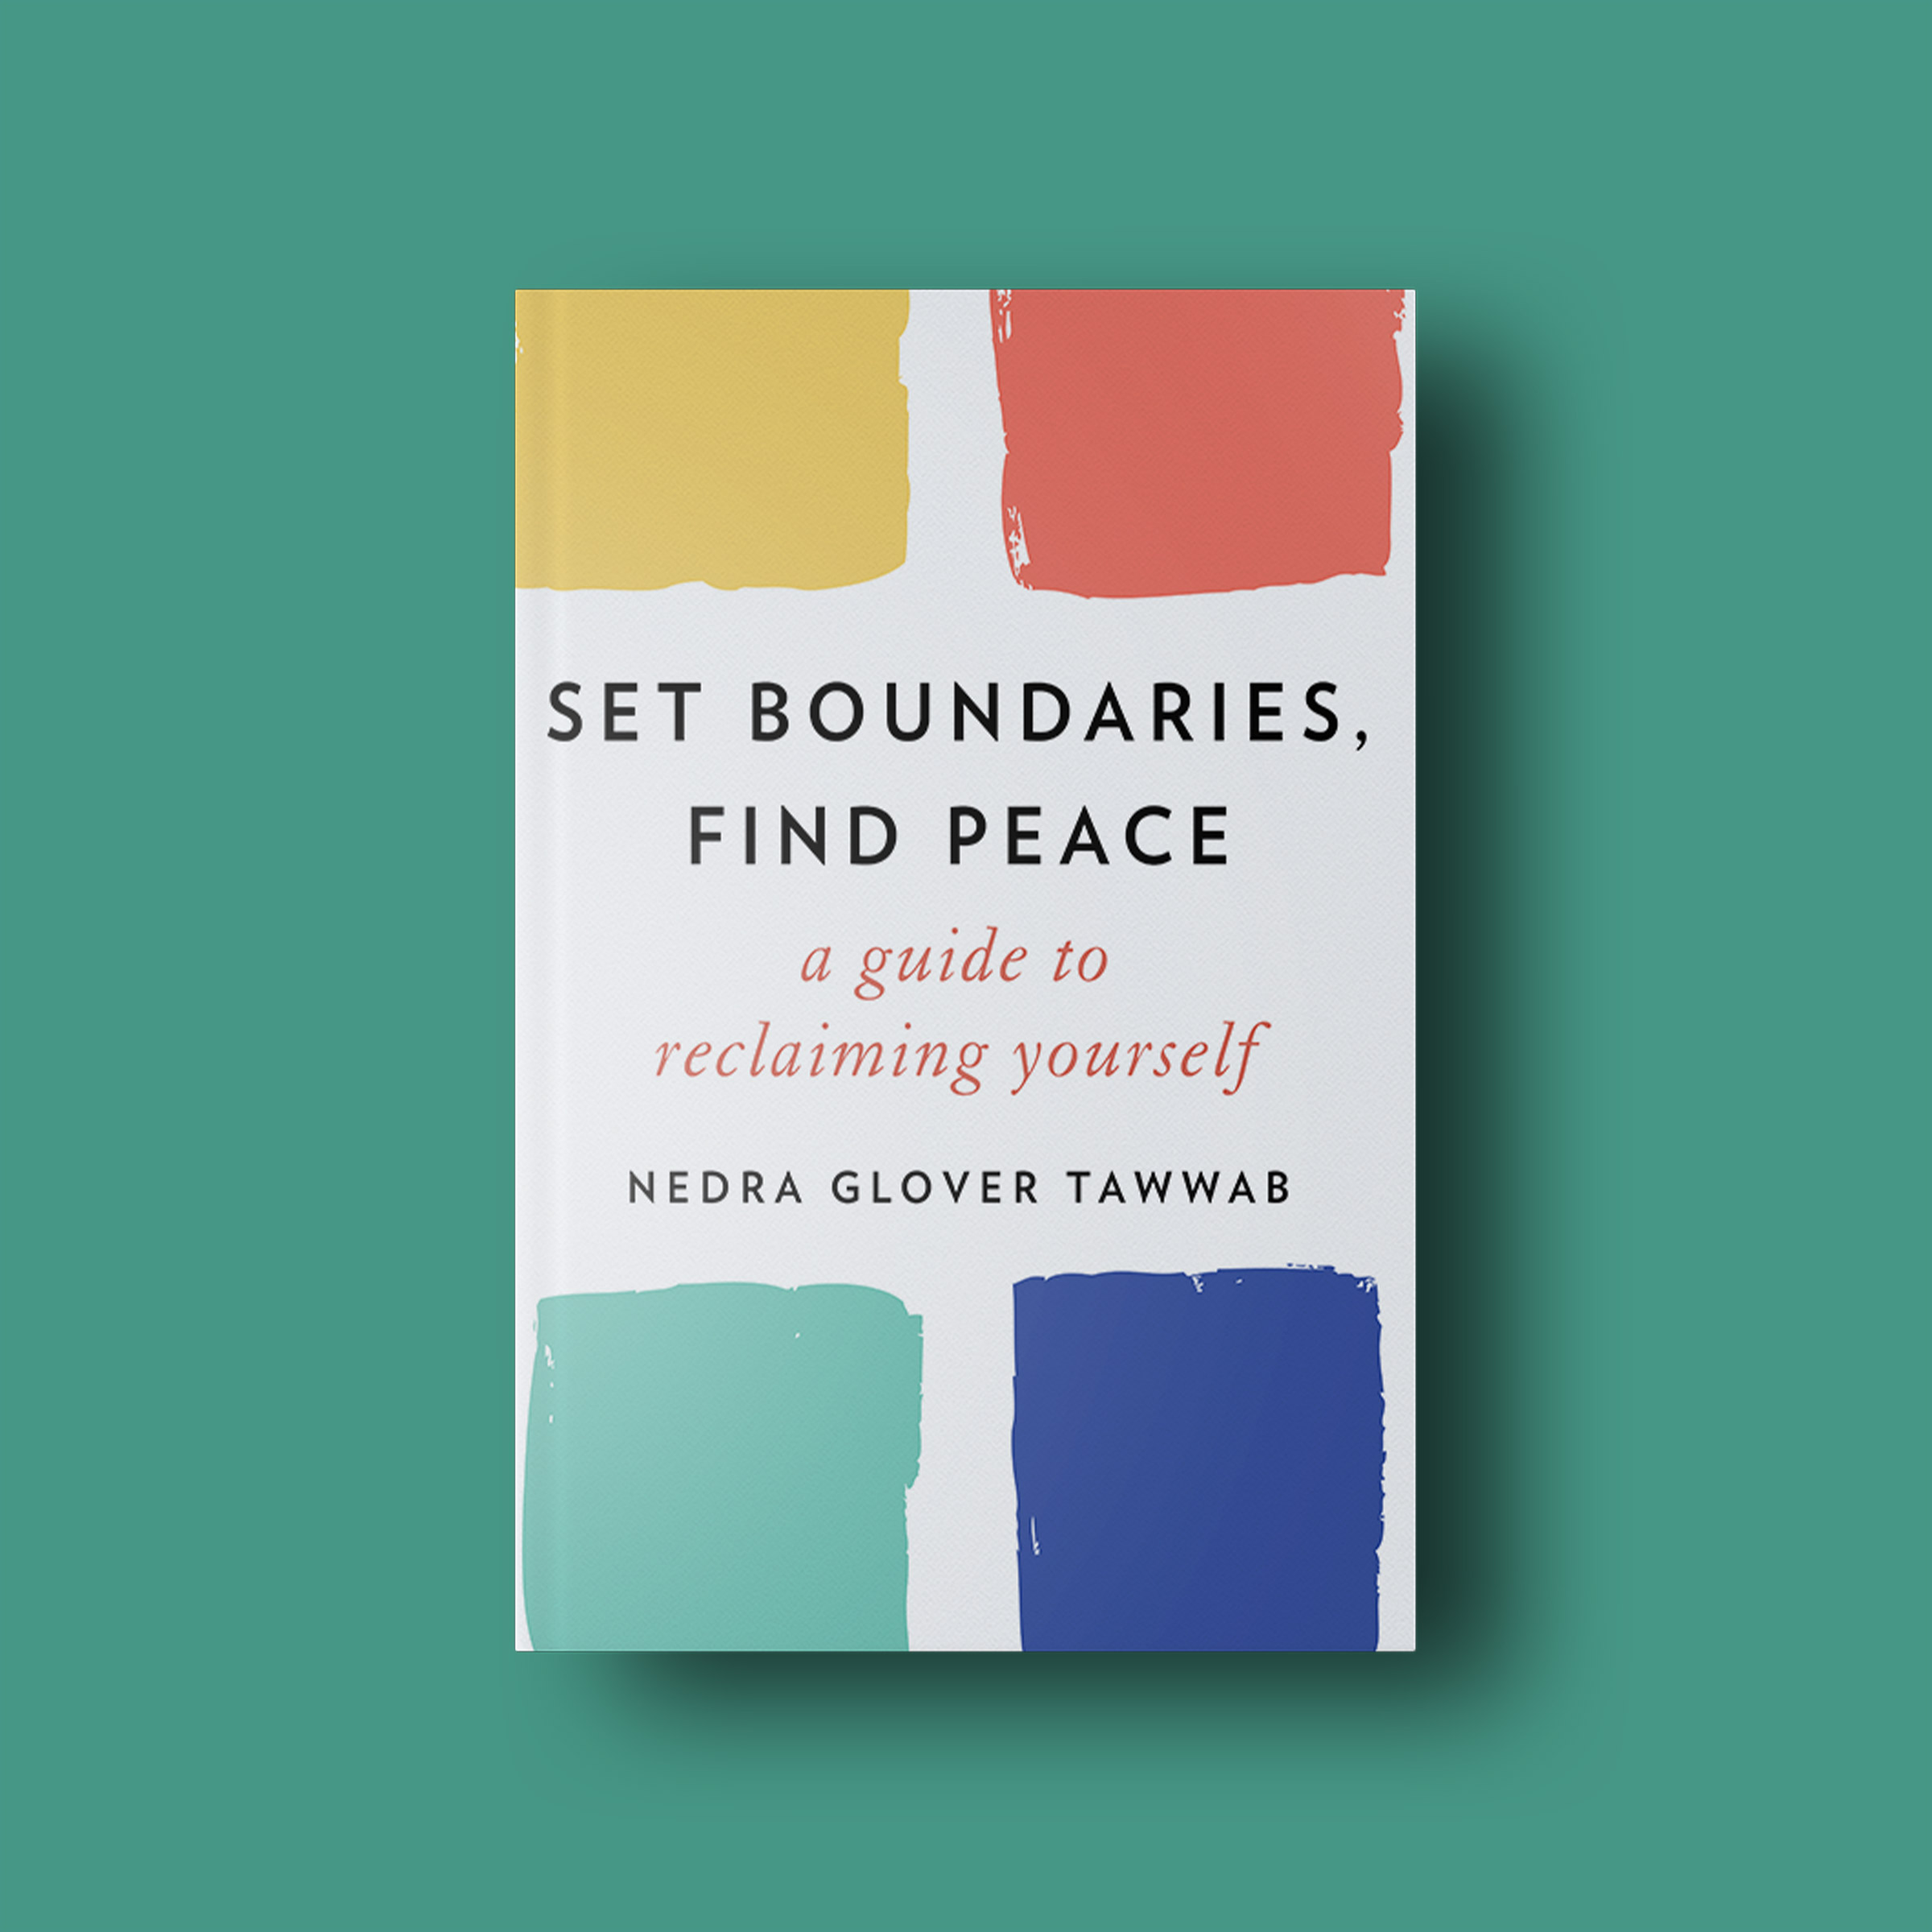 Set Boundaries, Find Peace  Excerpt